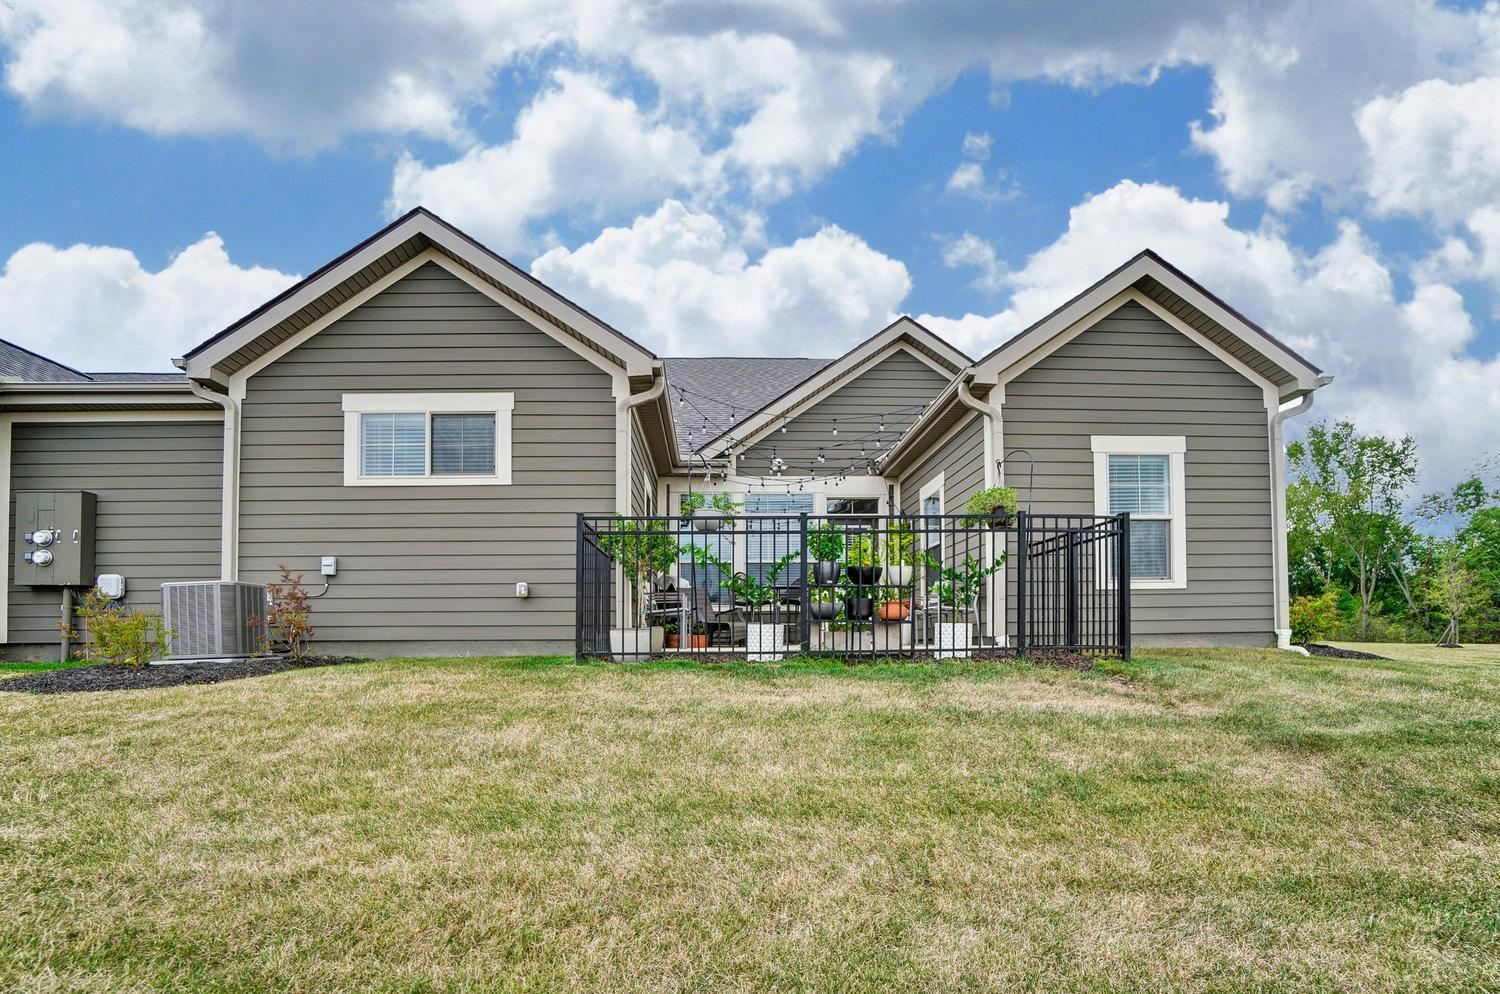 10400 Spicebrush Drive, Plain City, Ohio 43064, 3 Bedrooms Bedrooms, ,3 BathroomsBathrooms,Residential,For Sale,Spicebrush,220030502